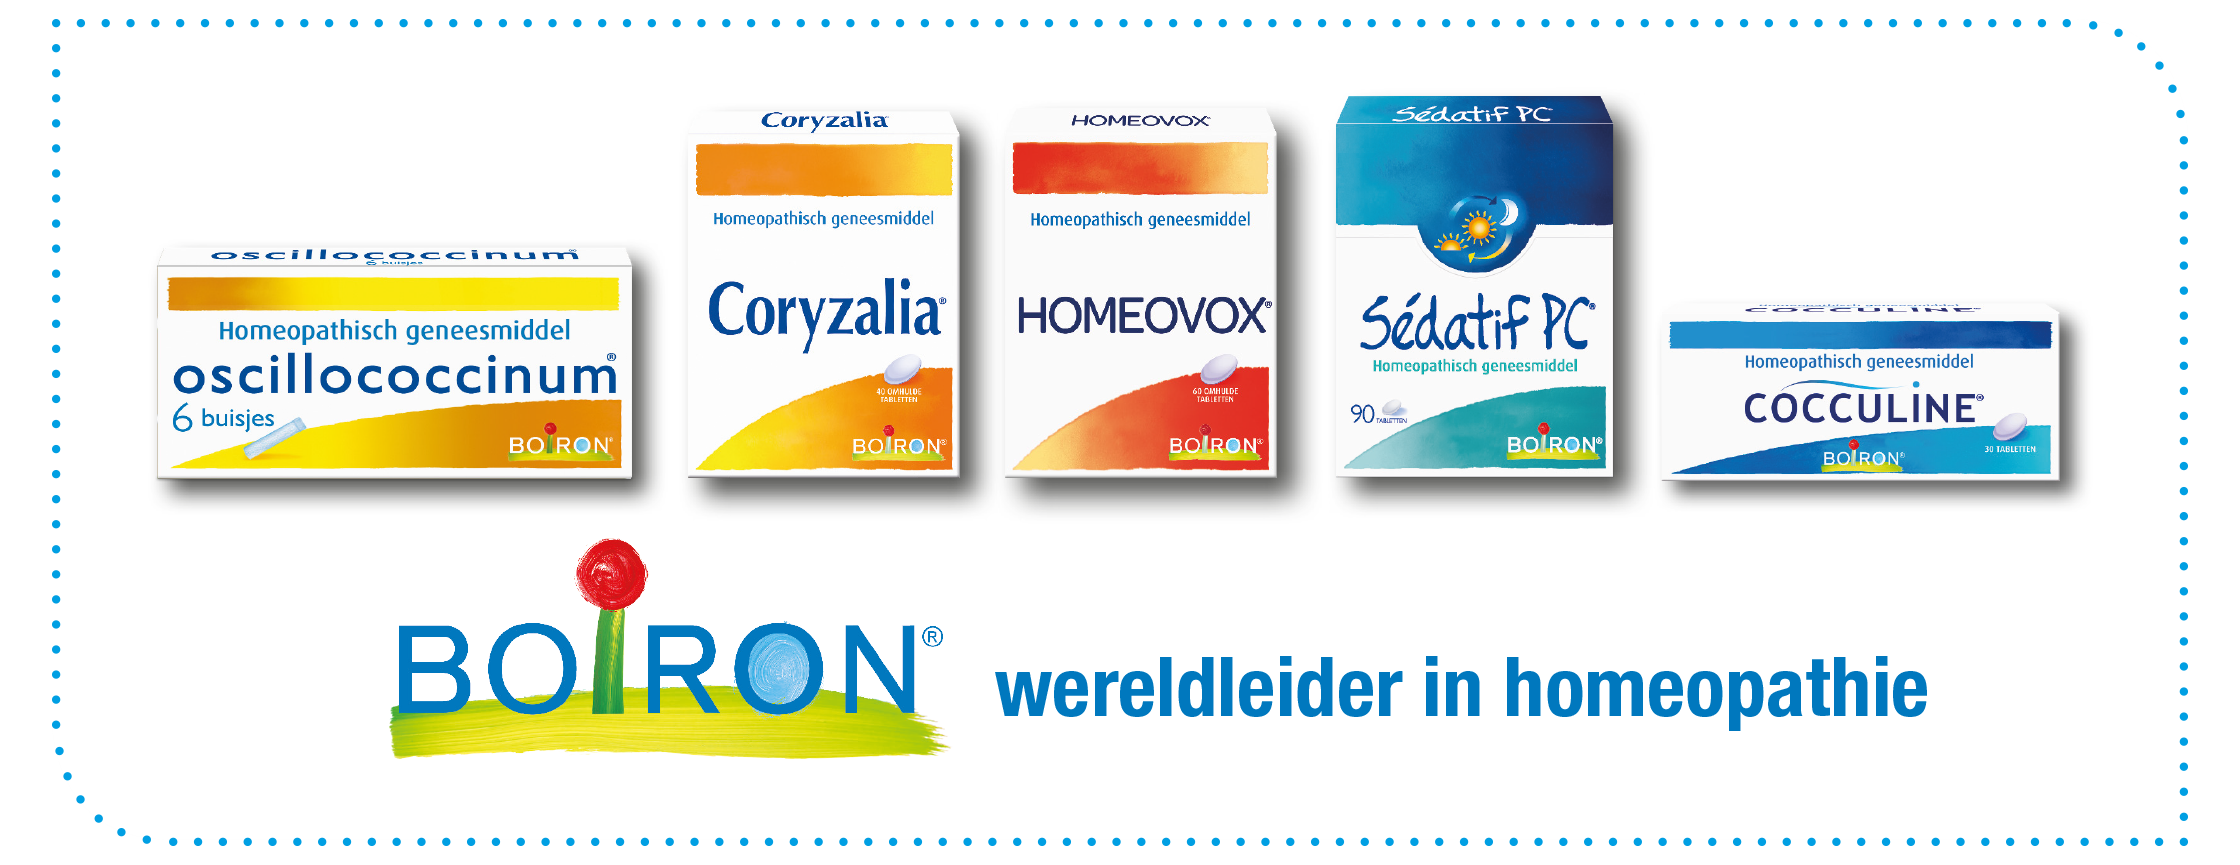 309191 boiron%20wereldleider%20in%20homeopathie 1 064337 original 1554904777